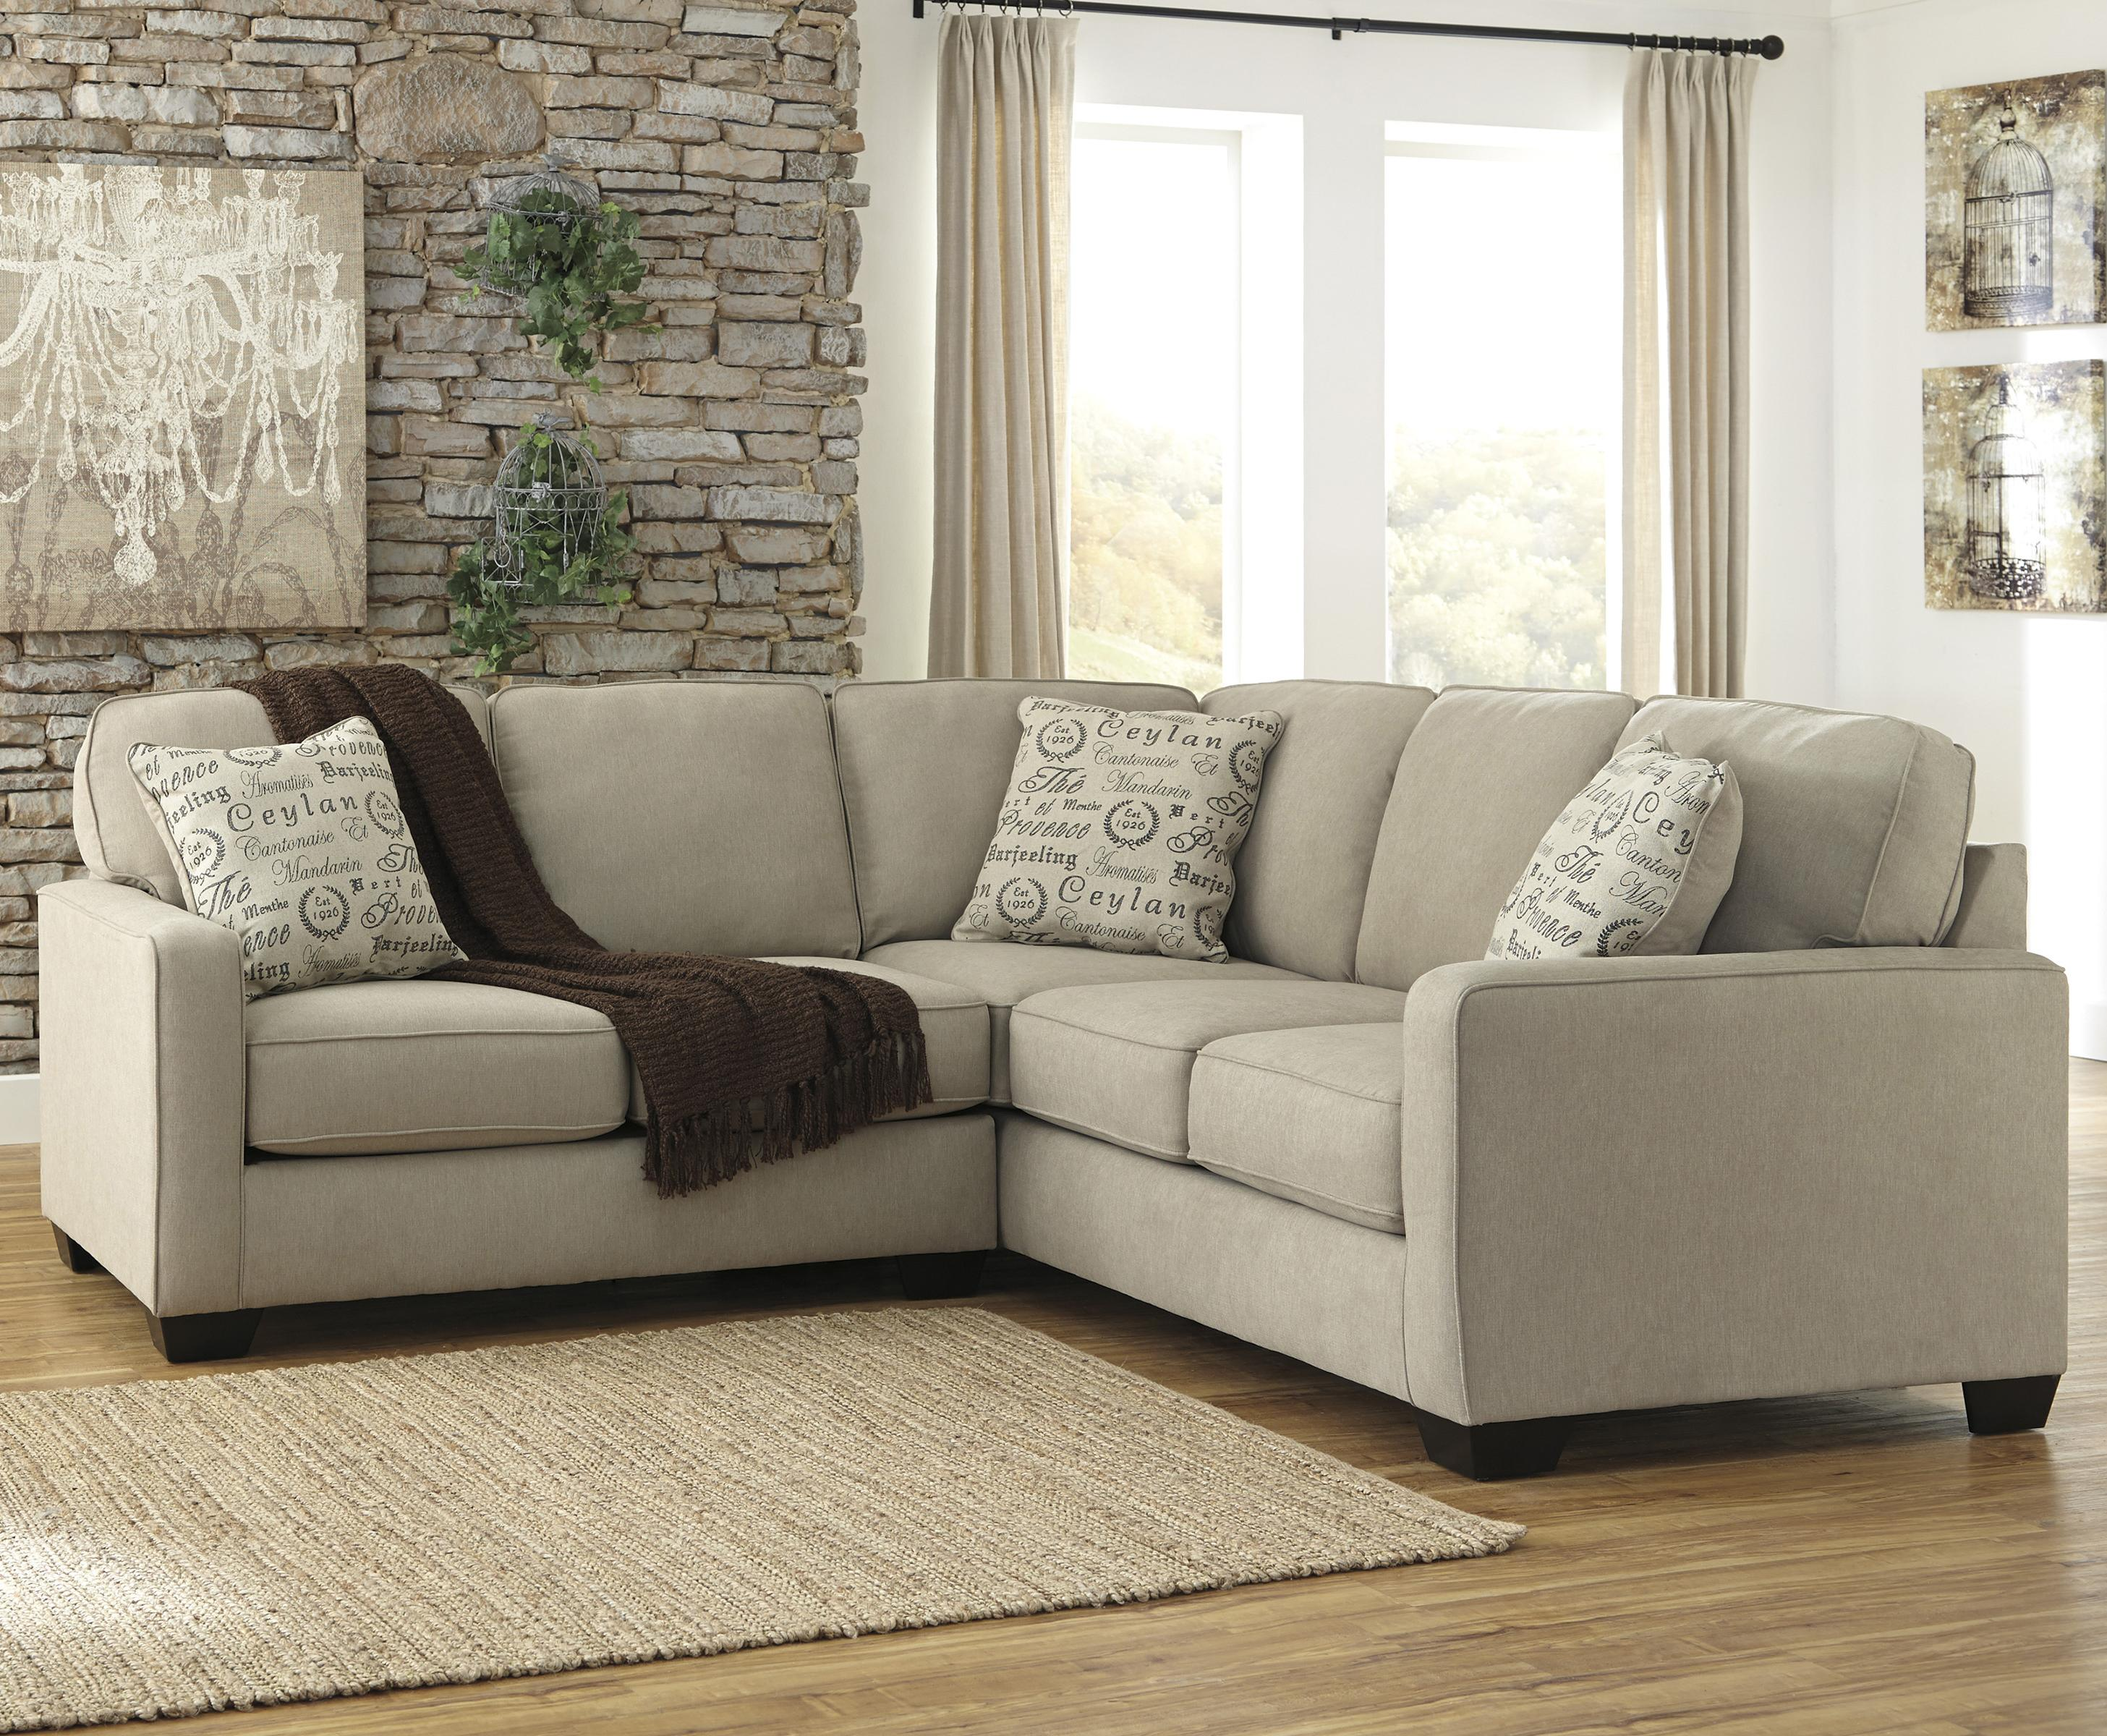 Alenya - Quartz 2-Piece Sectional with Left Loveseat by Signature at Walker's Furniture